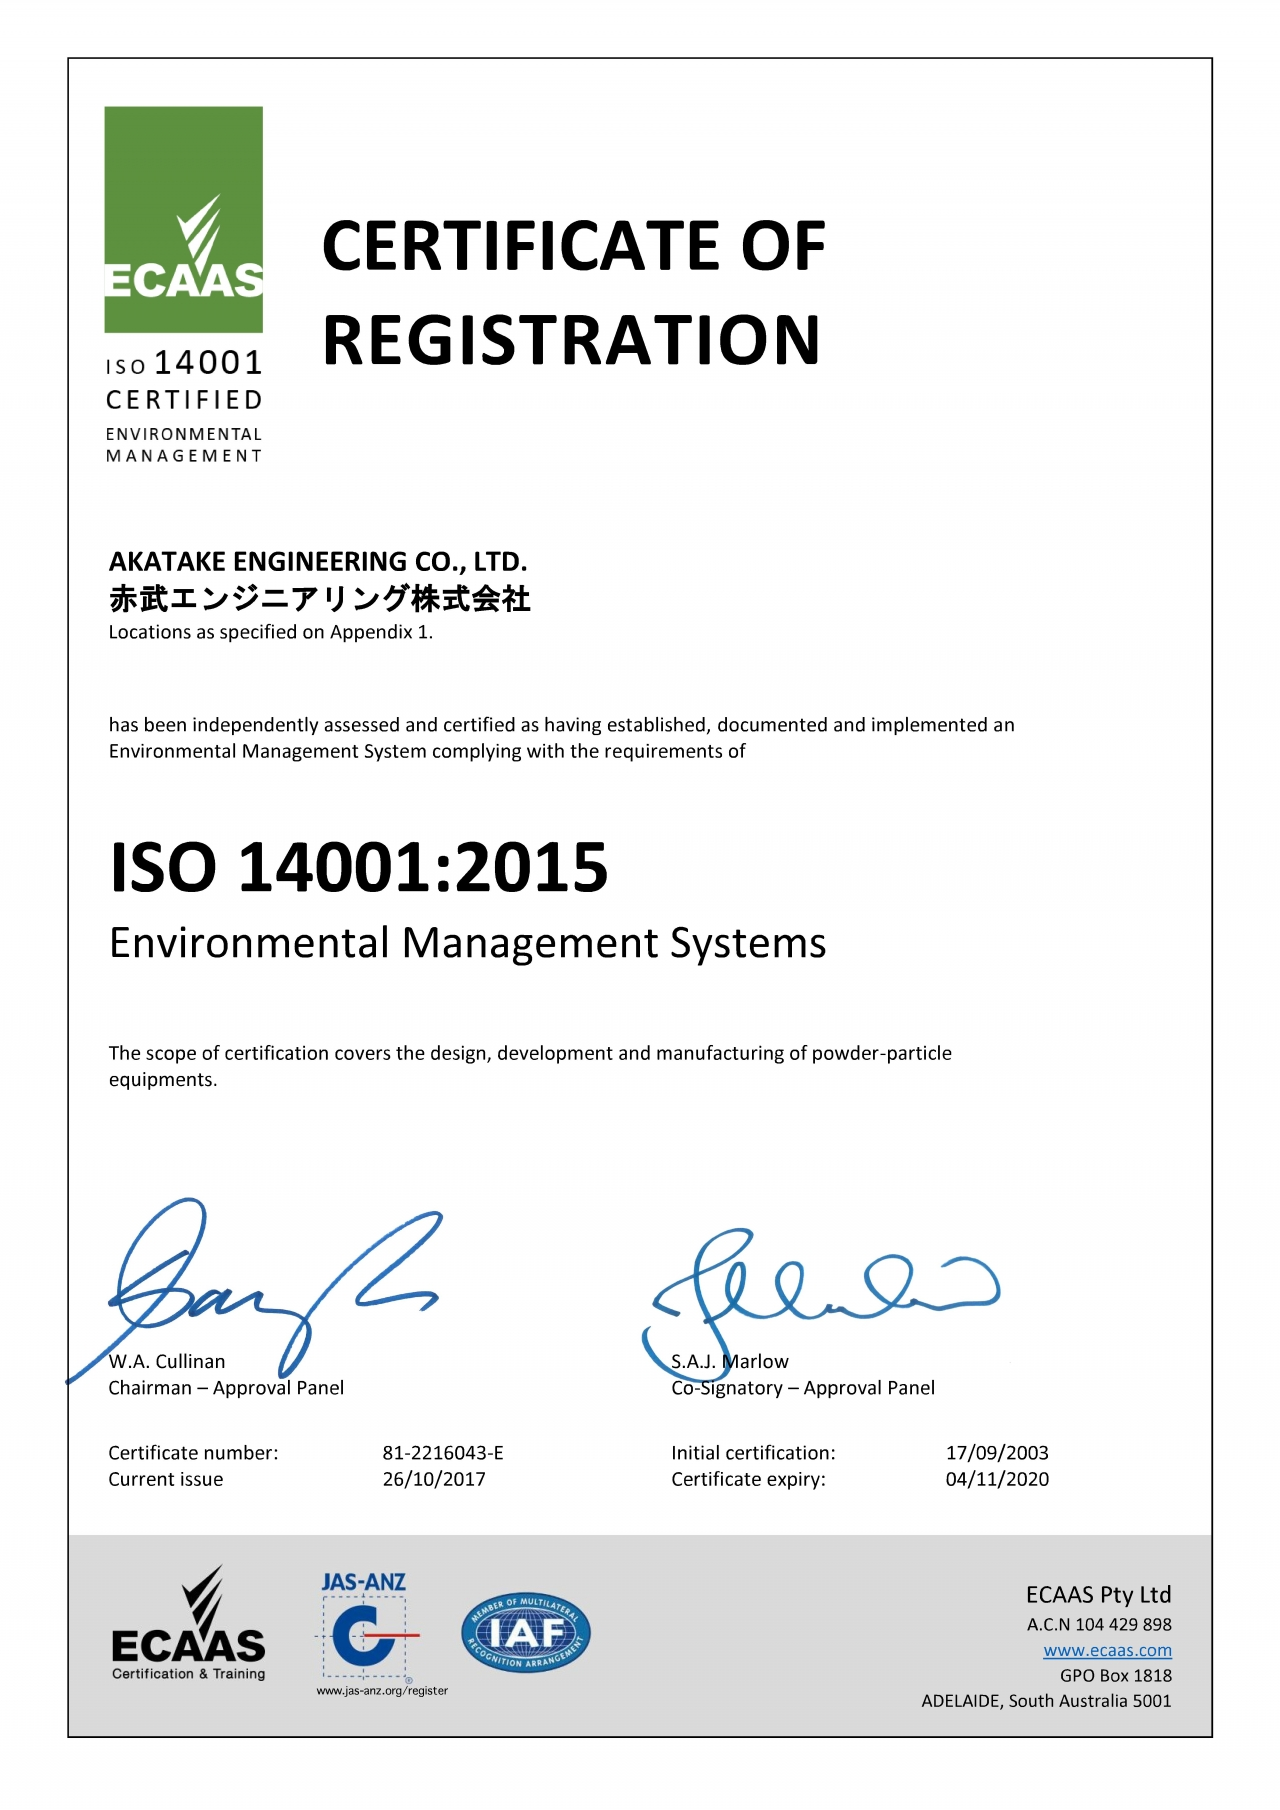 ISO-14001登録証2216043_Q-164__E-010_Recertification_Transition-1